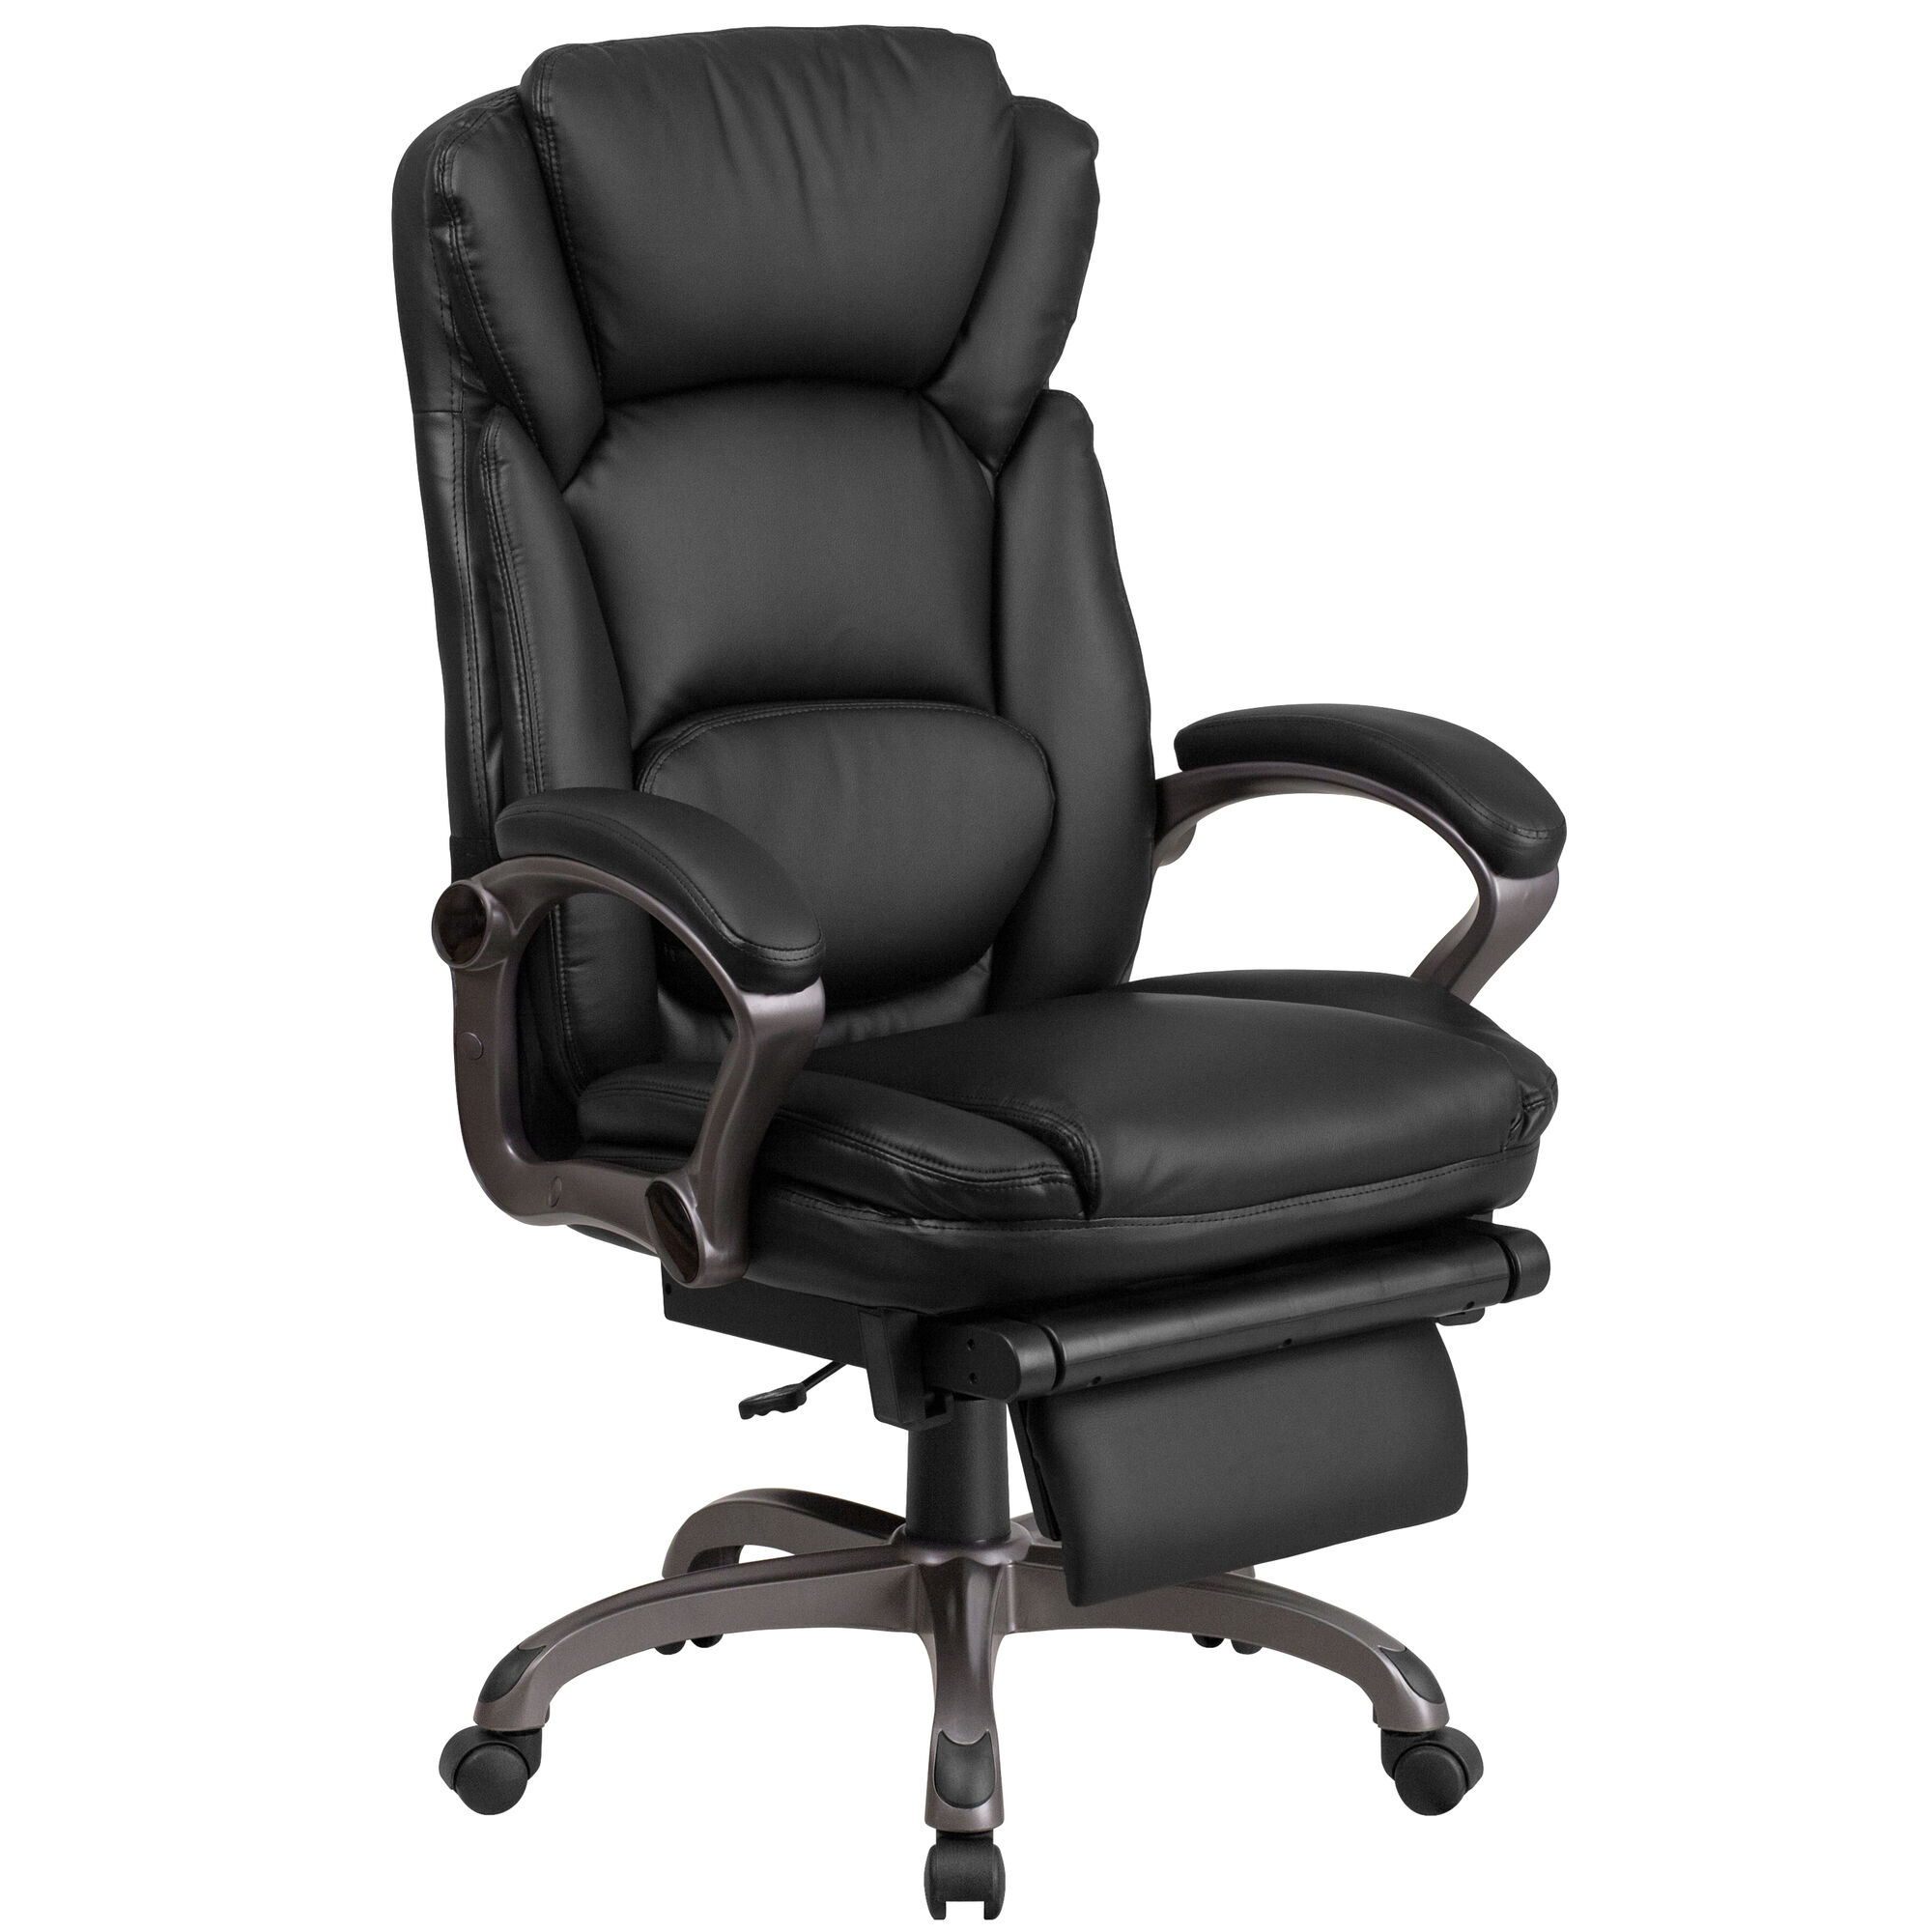 Our High Back Black Leather Executive Reclining Ergonomic